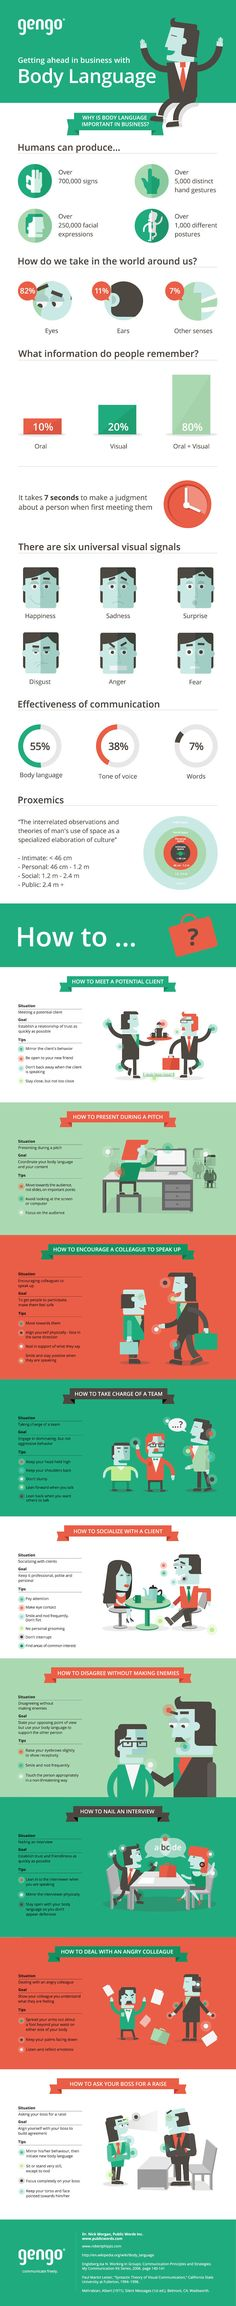 How to Use Your Body Language to Be Successful in Business [Infographic] (via @HubSpot]